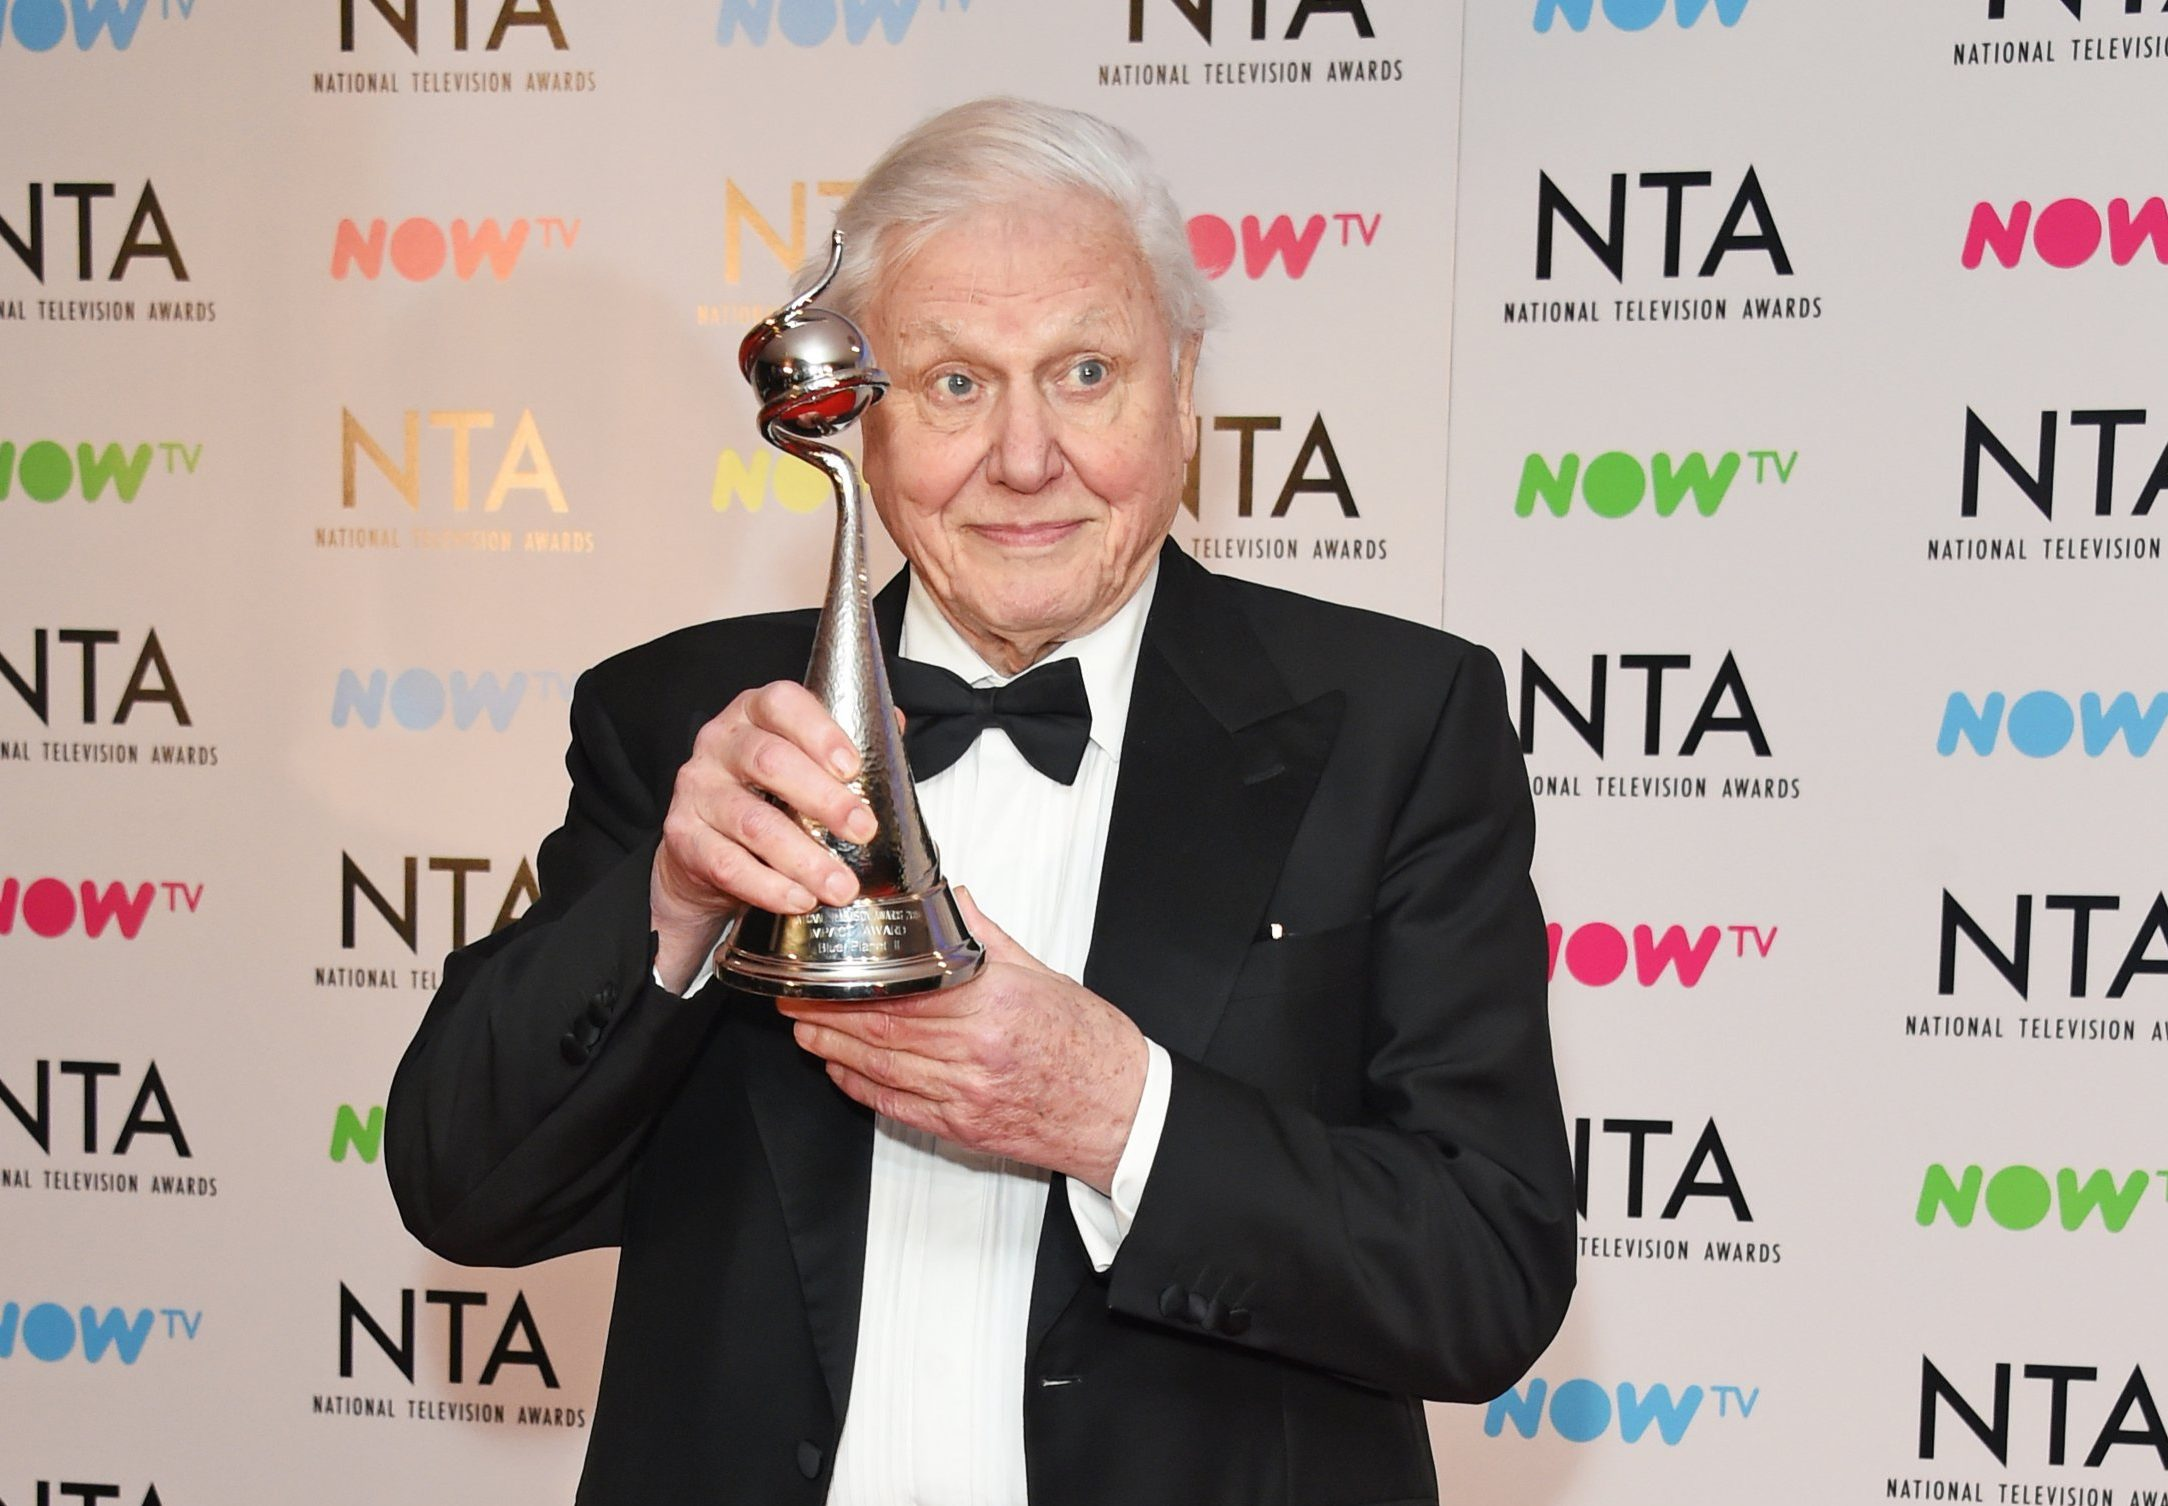 Sir David Attenborough receives standing ovation at NTAs as he urges us to protect our 'beautiful world'